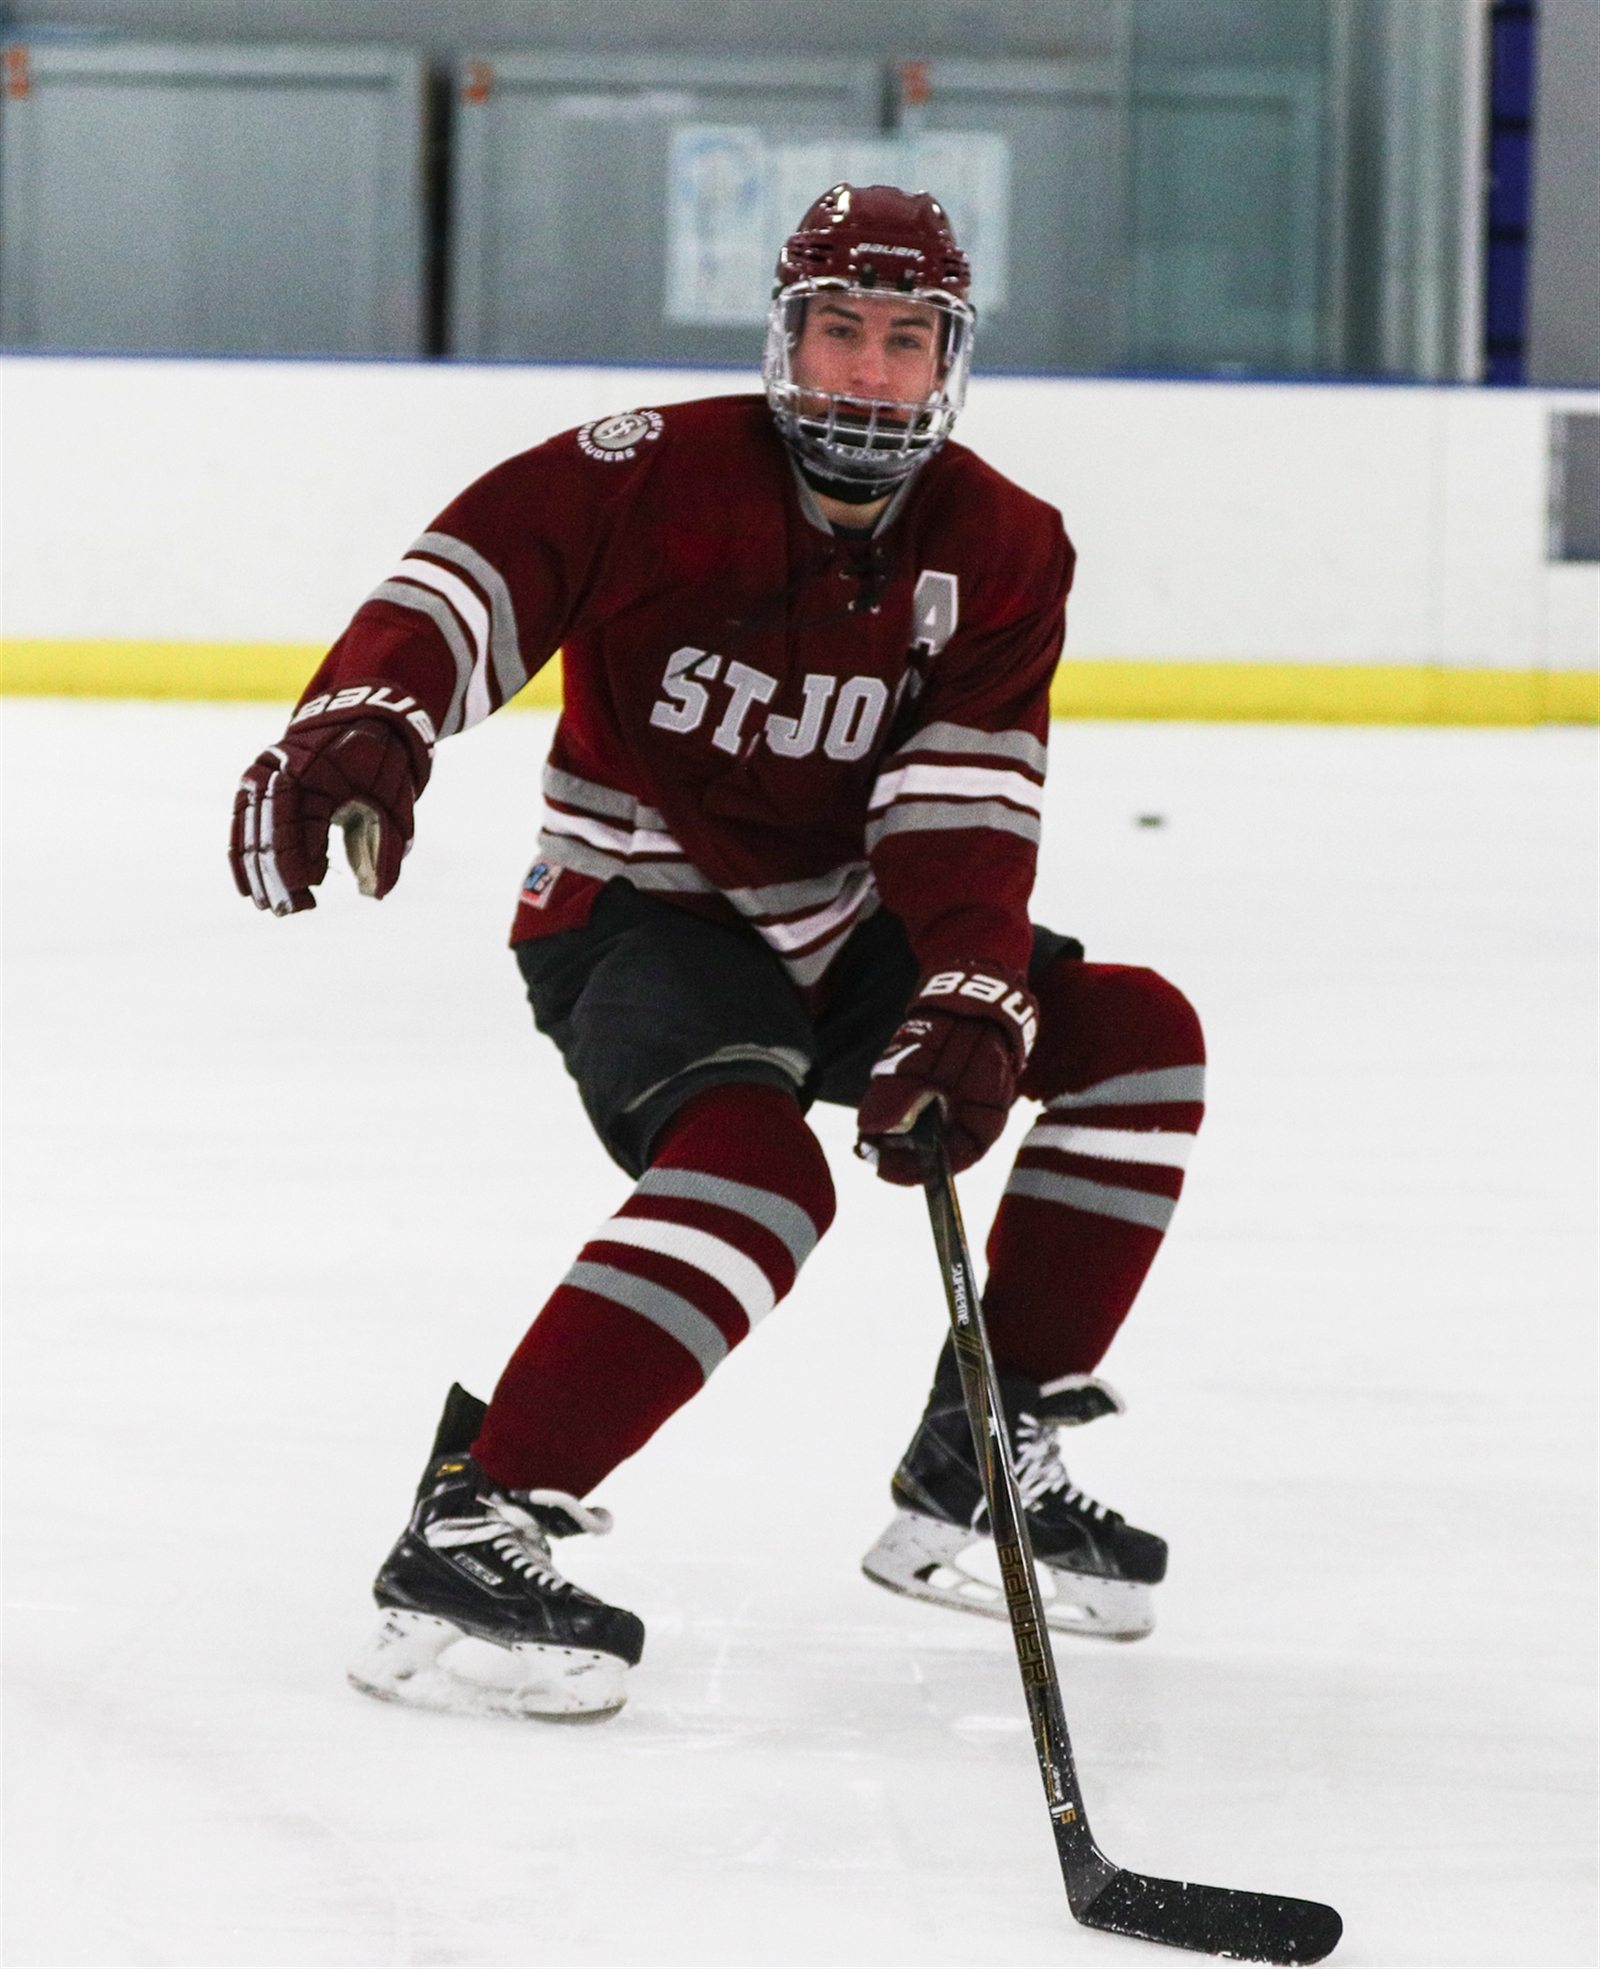 St. Joe's player Shane Scheeler has returned to the ice recently in limited drills.